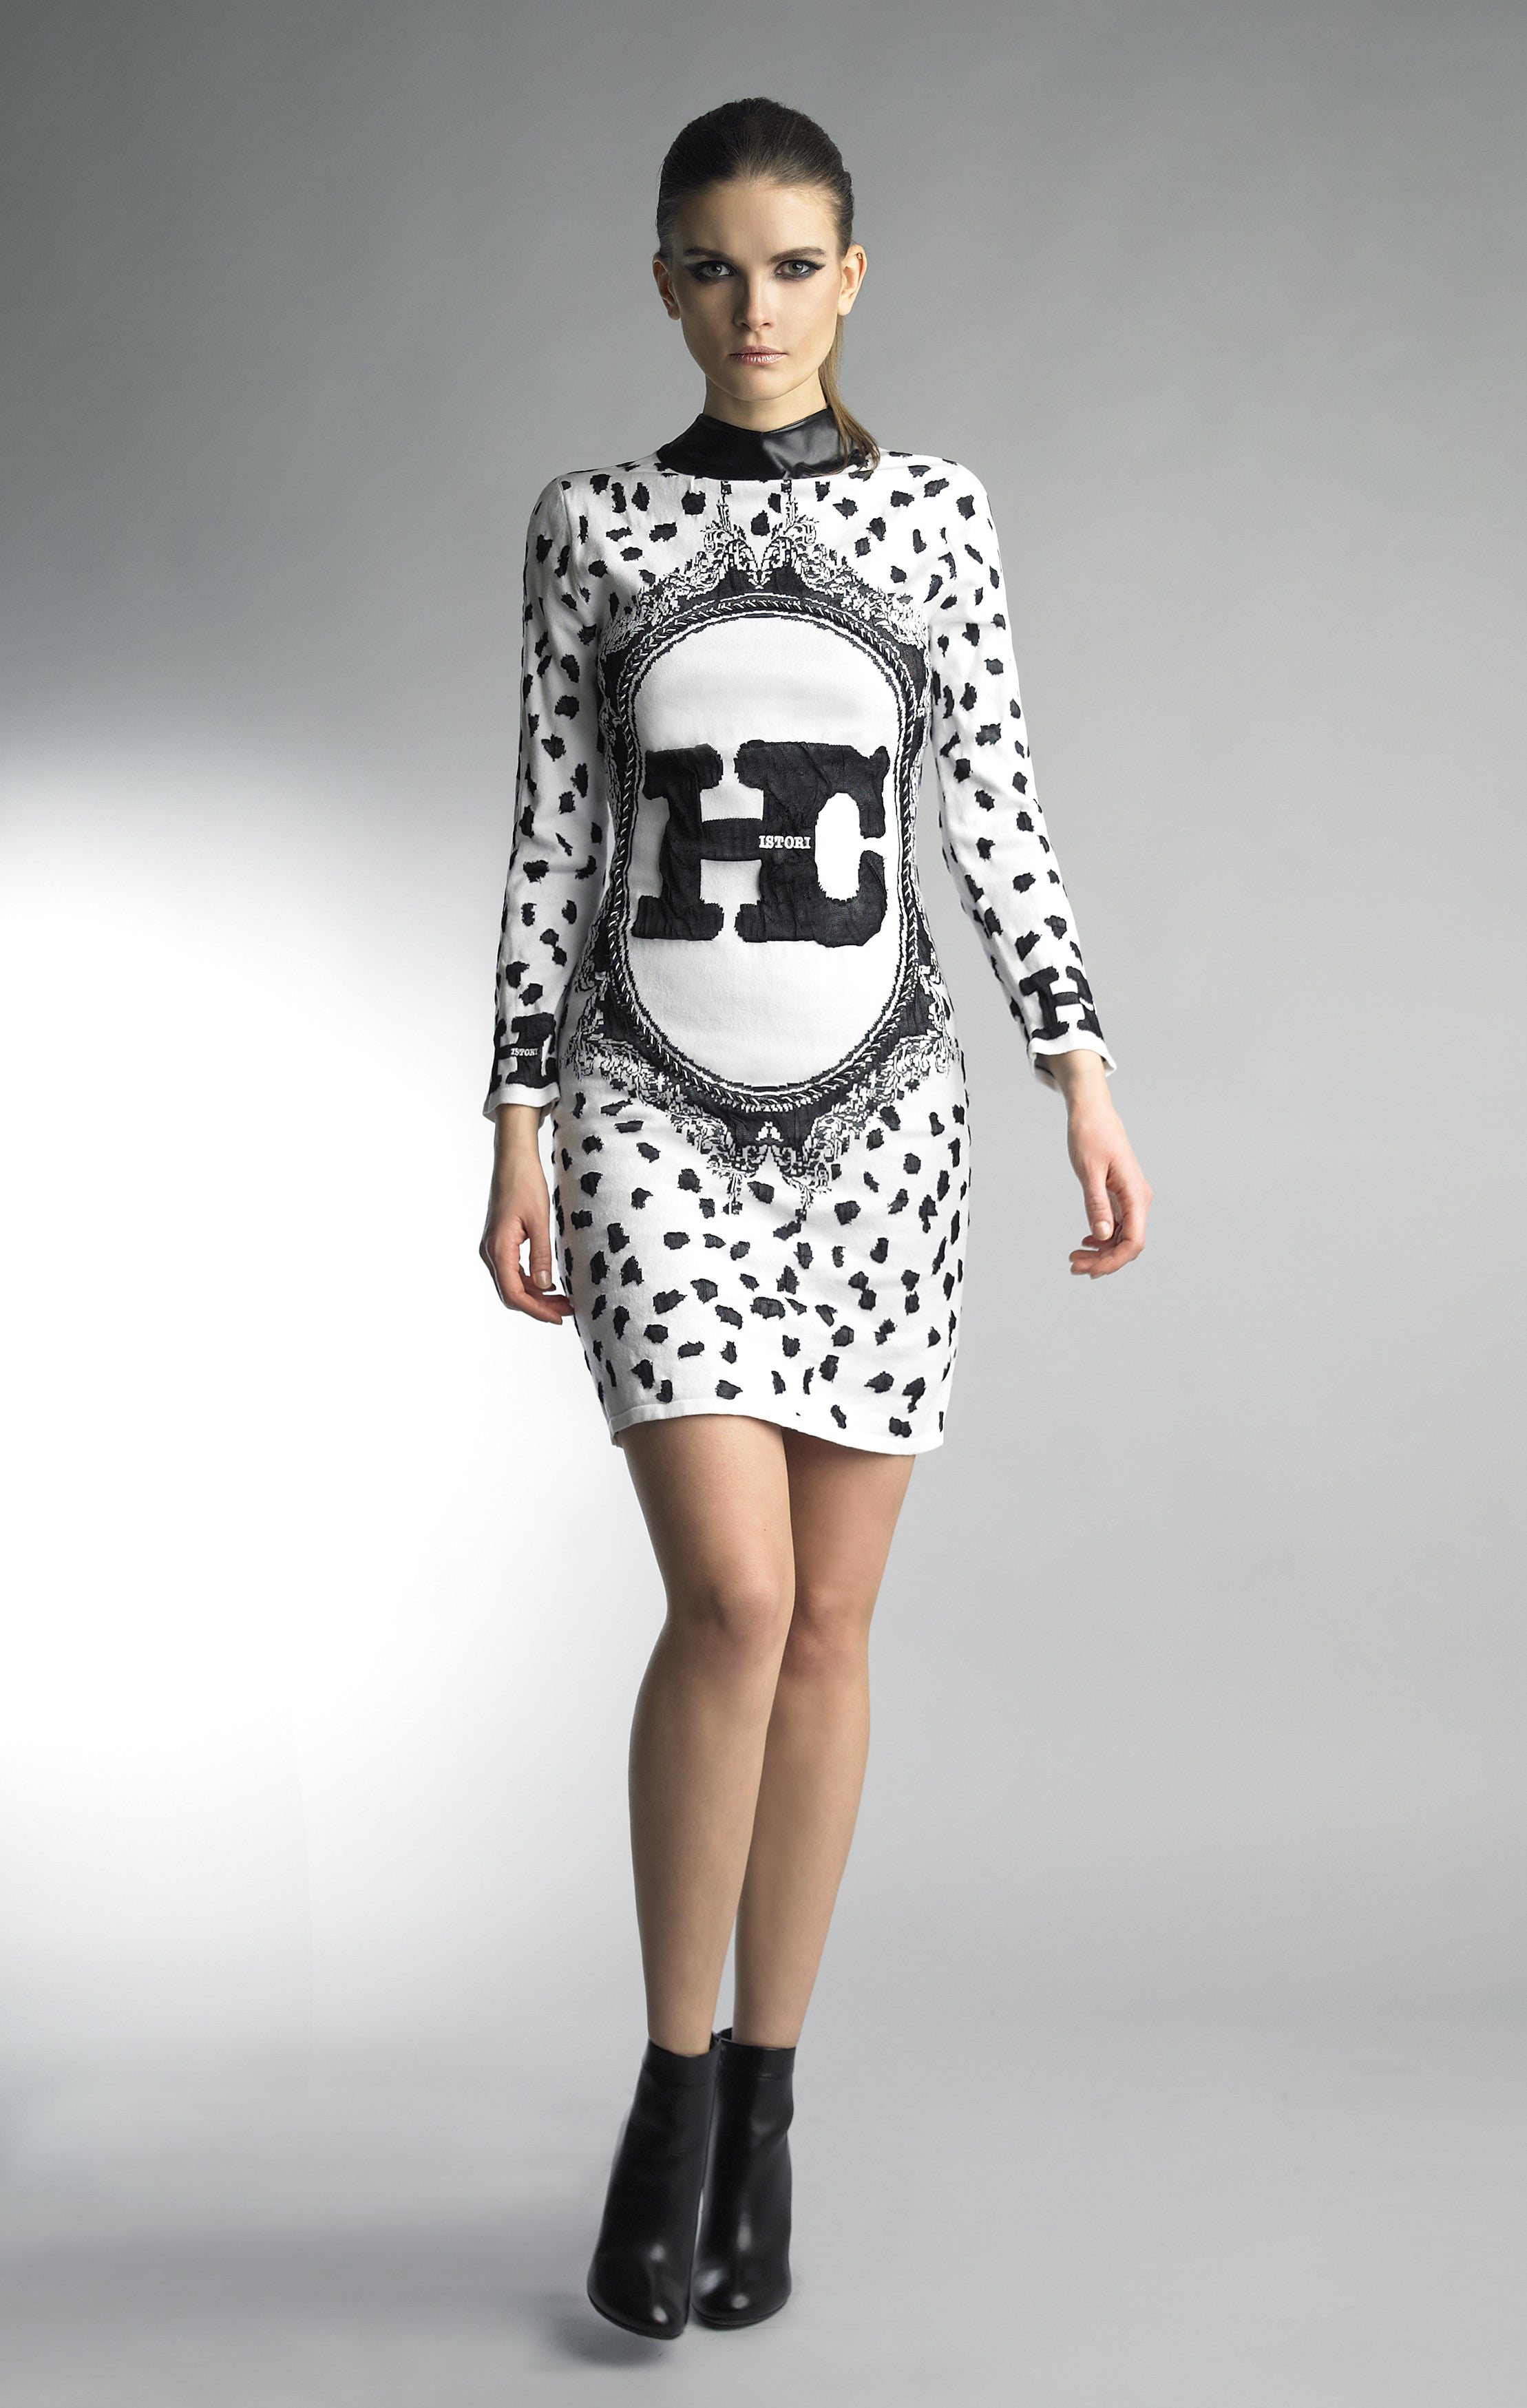 Historic New York Monochrome Collection - Cadre en Burlina Jacquard Dress